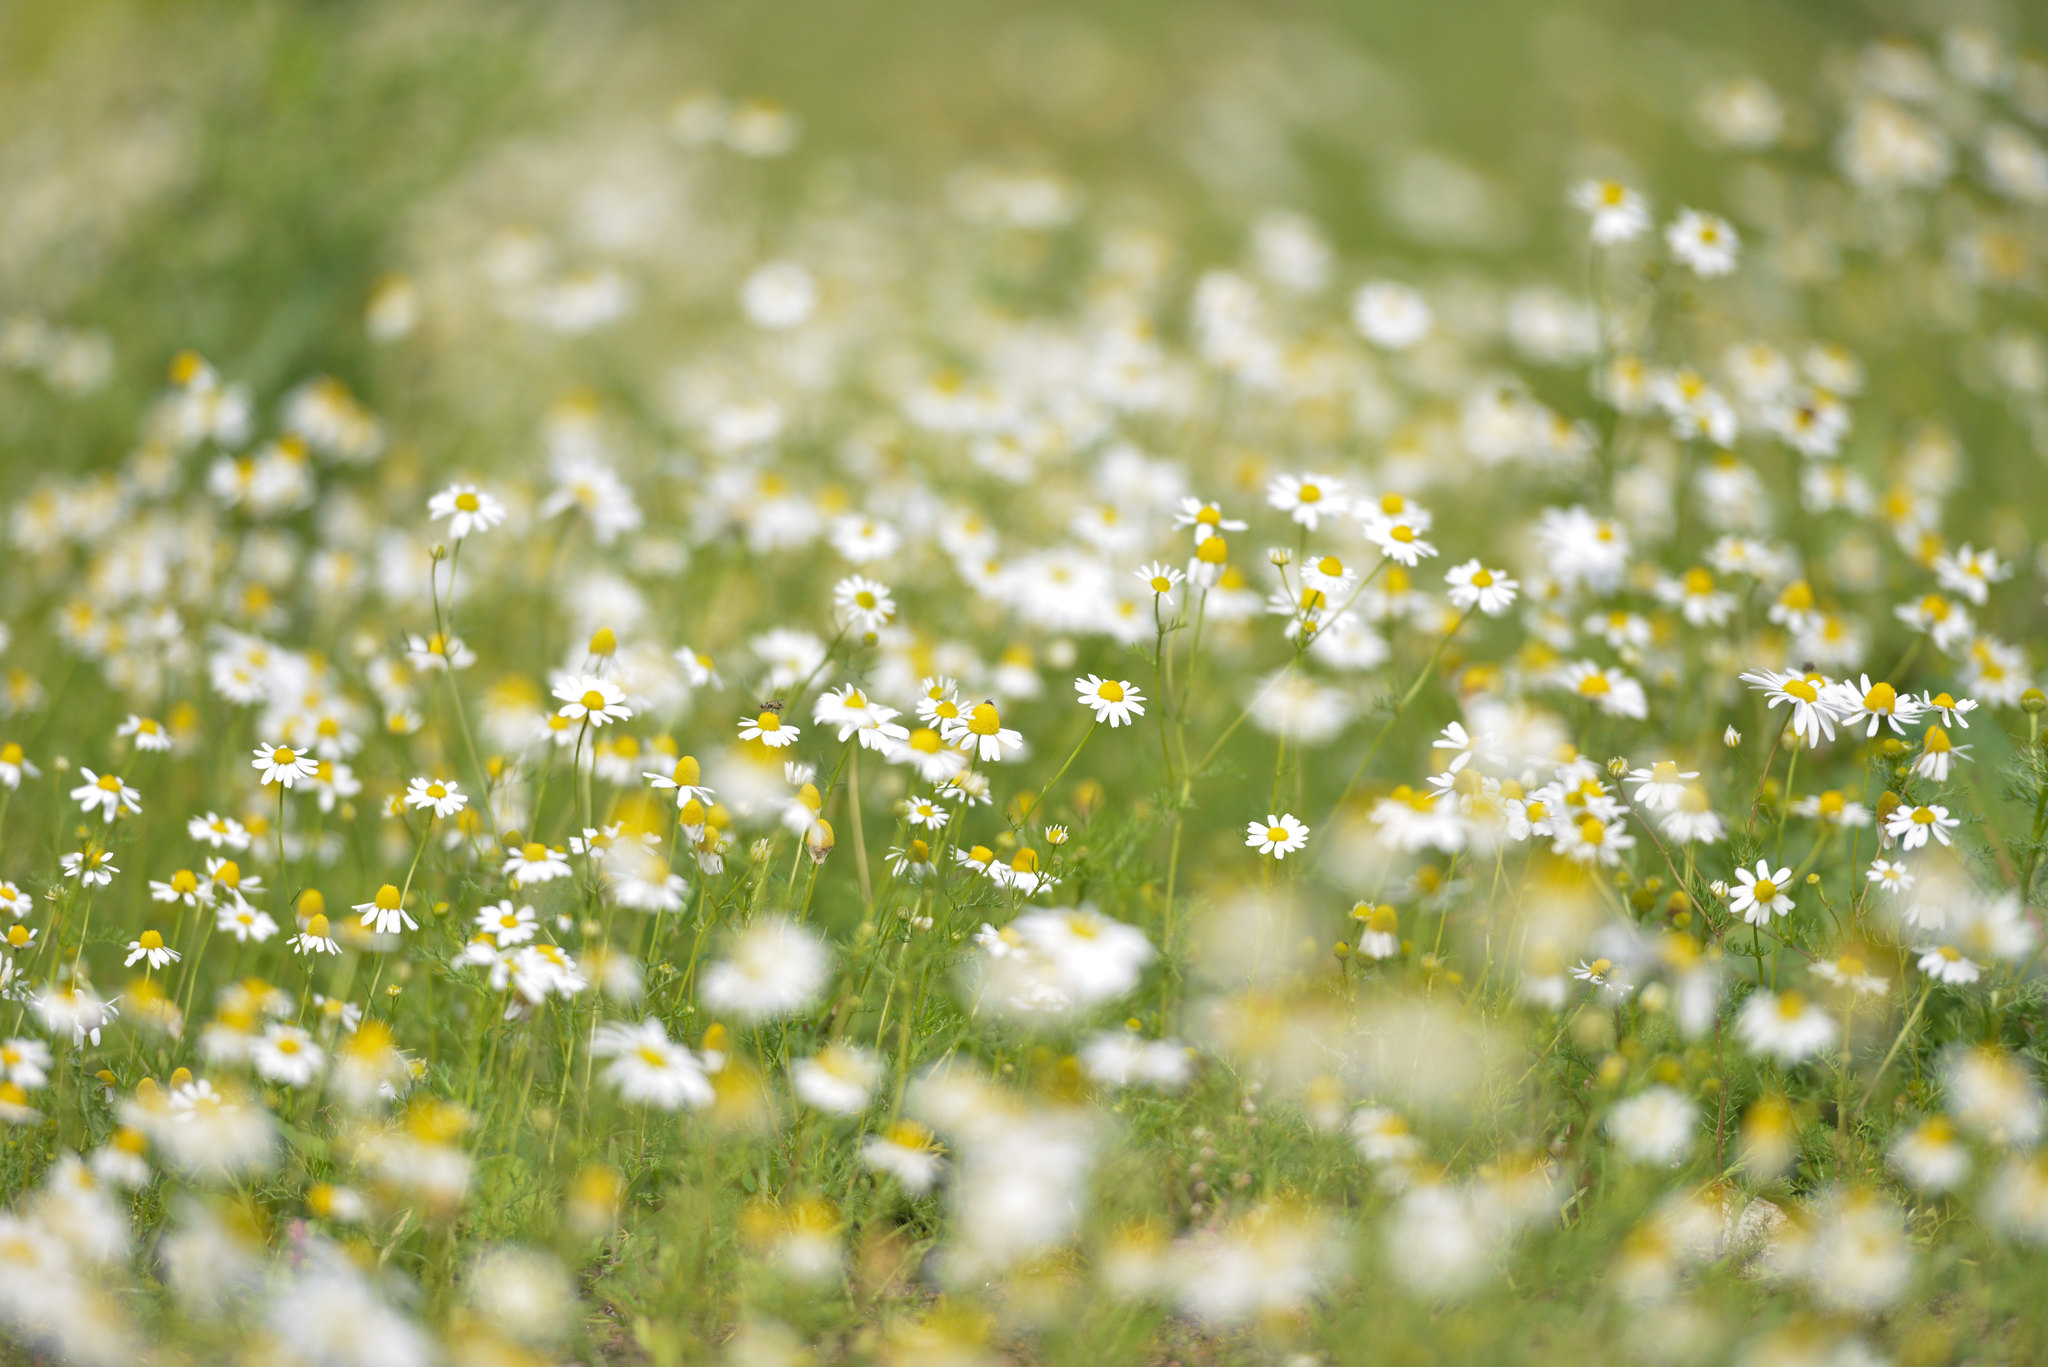 Lots Of Wild Daisies in A field With Narrow Focus 2